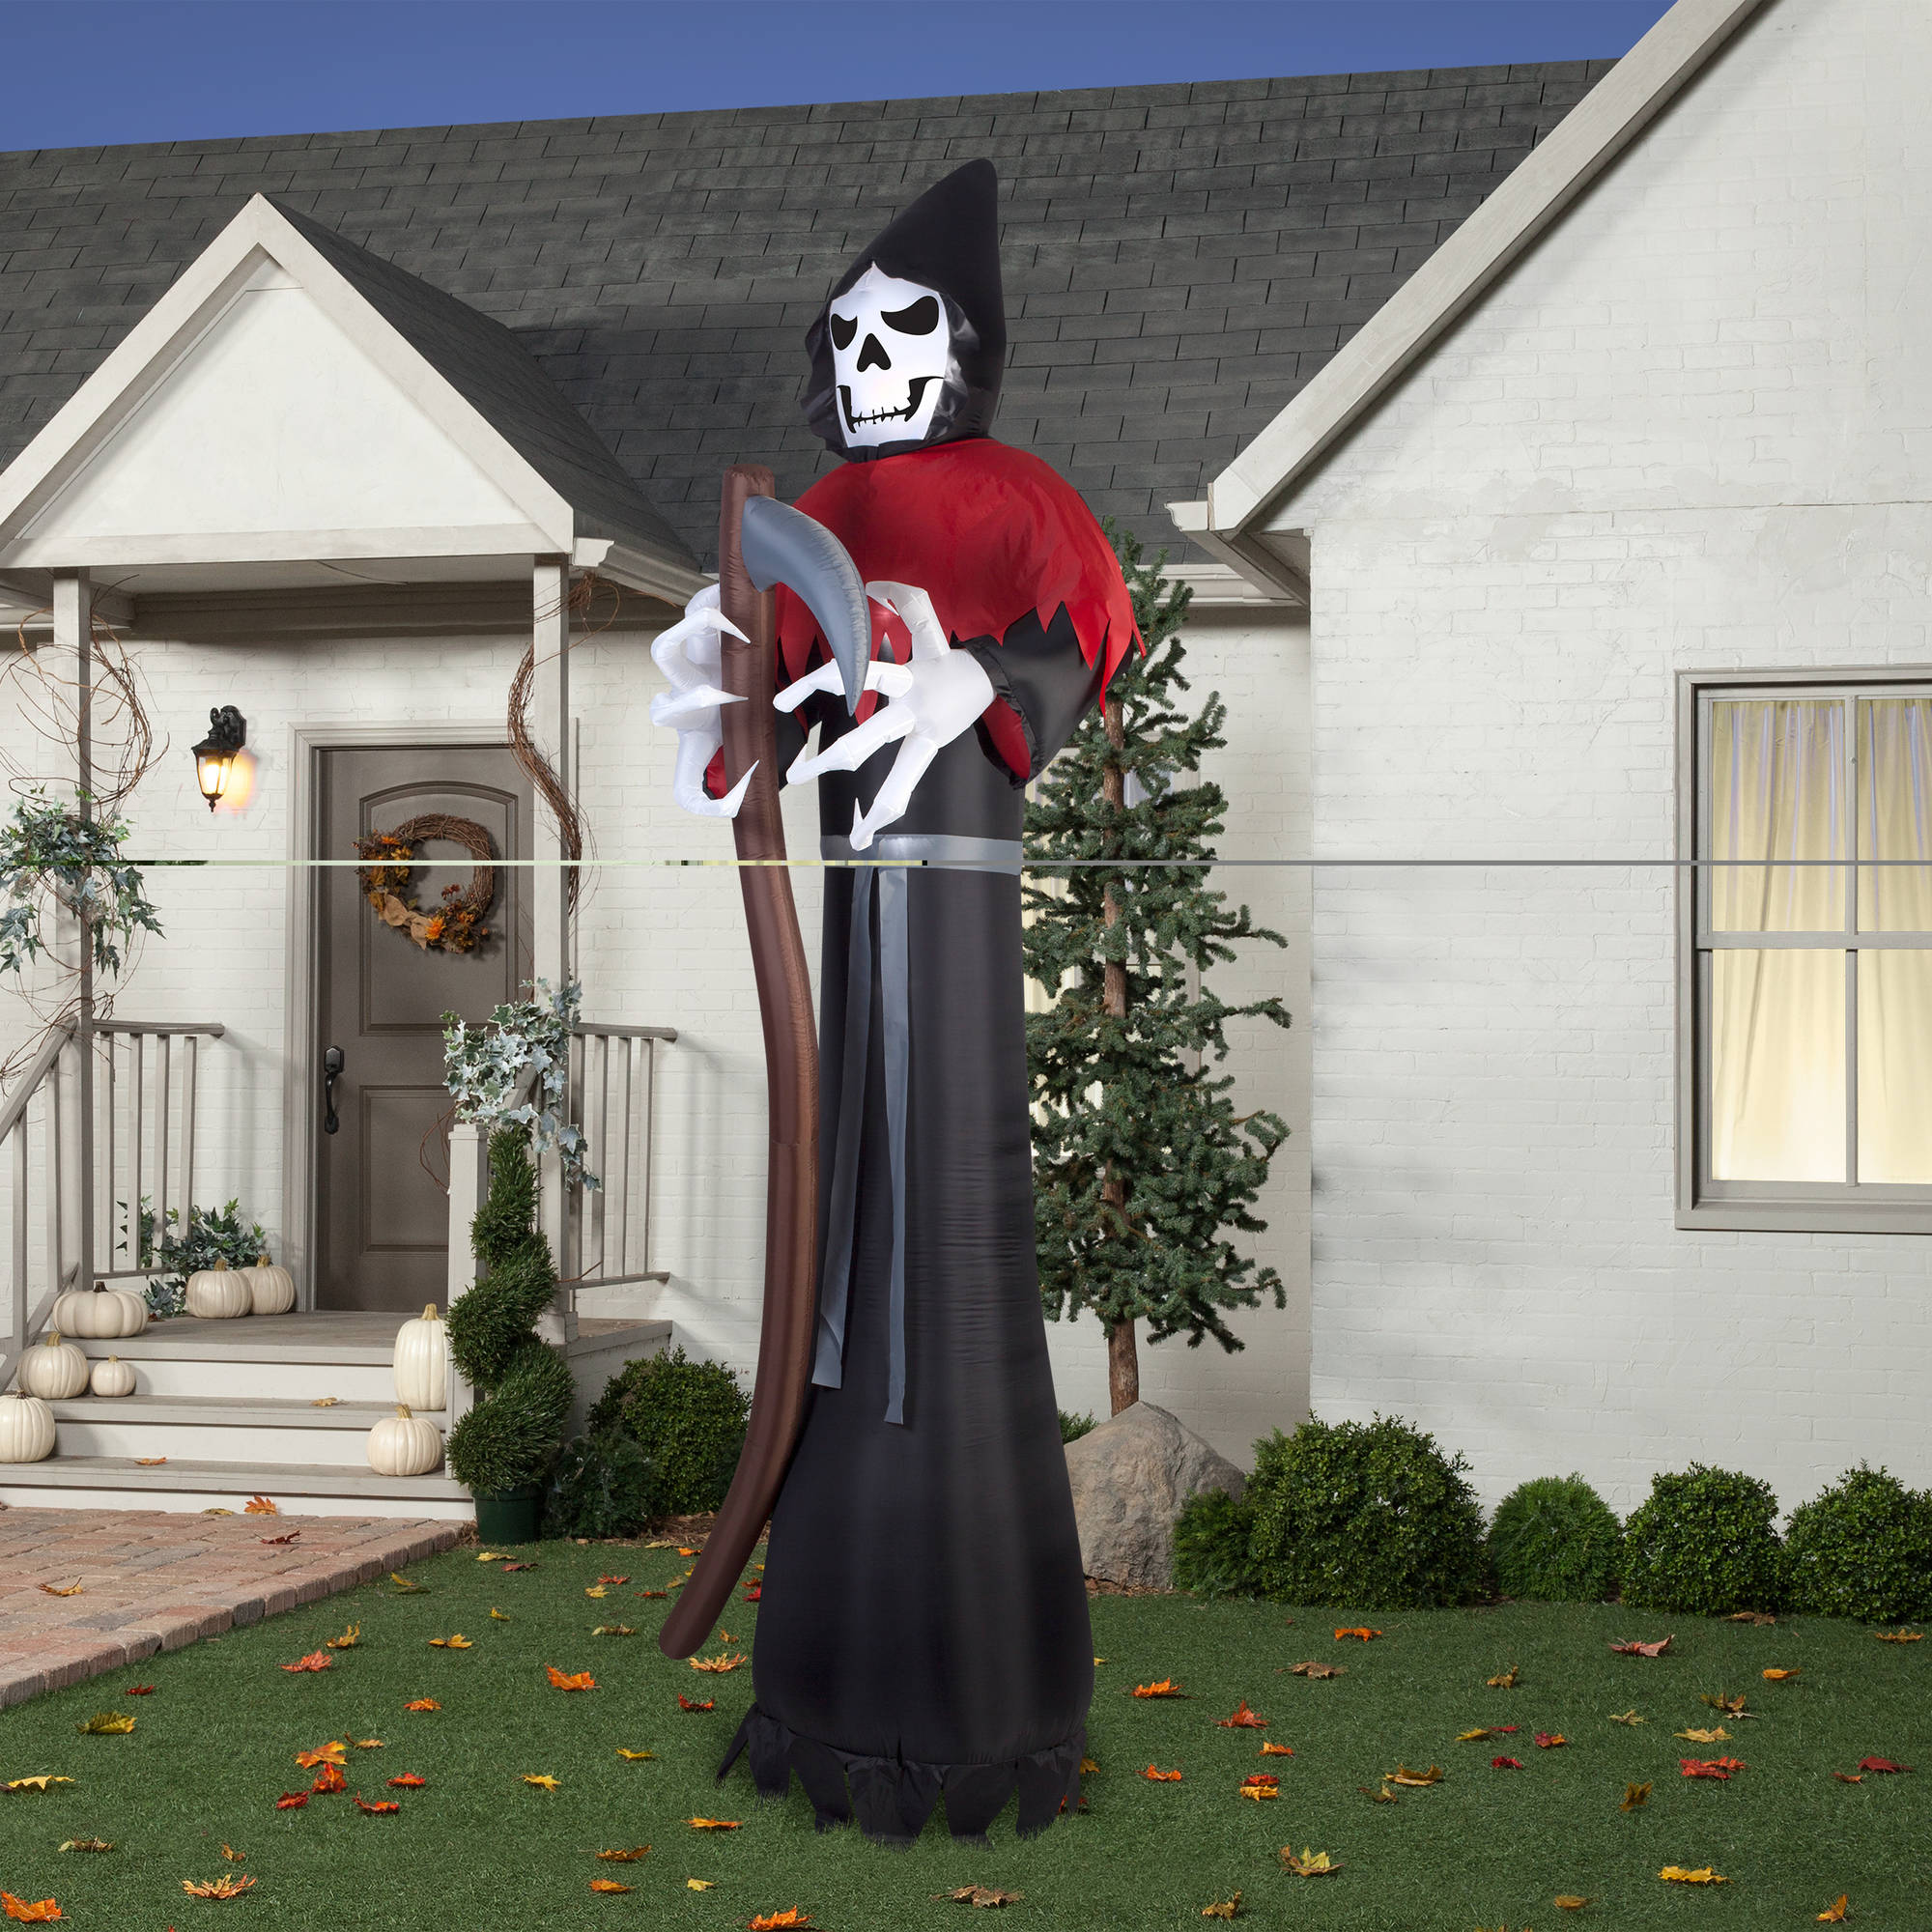 gemmy airblown inflatable 12 x 4 giant grim reaper halloween decoration walmartcom - Giant Halloween Decorations